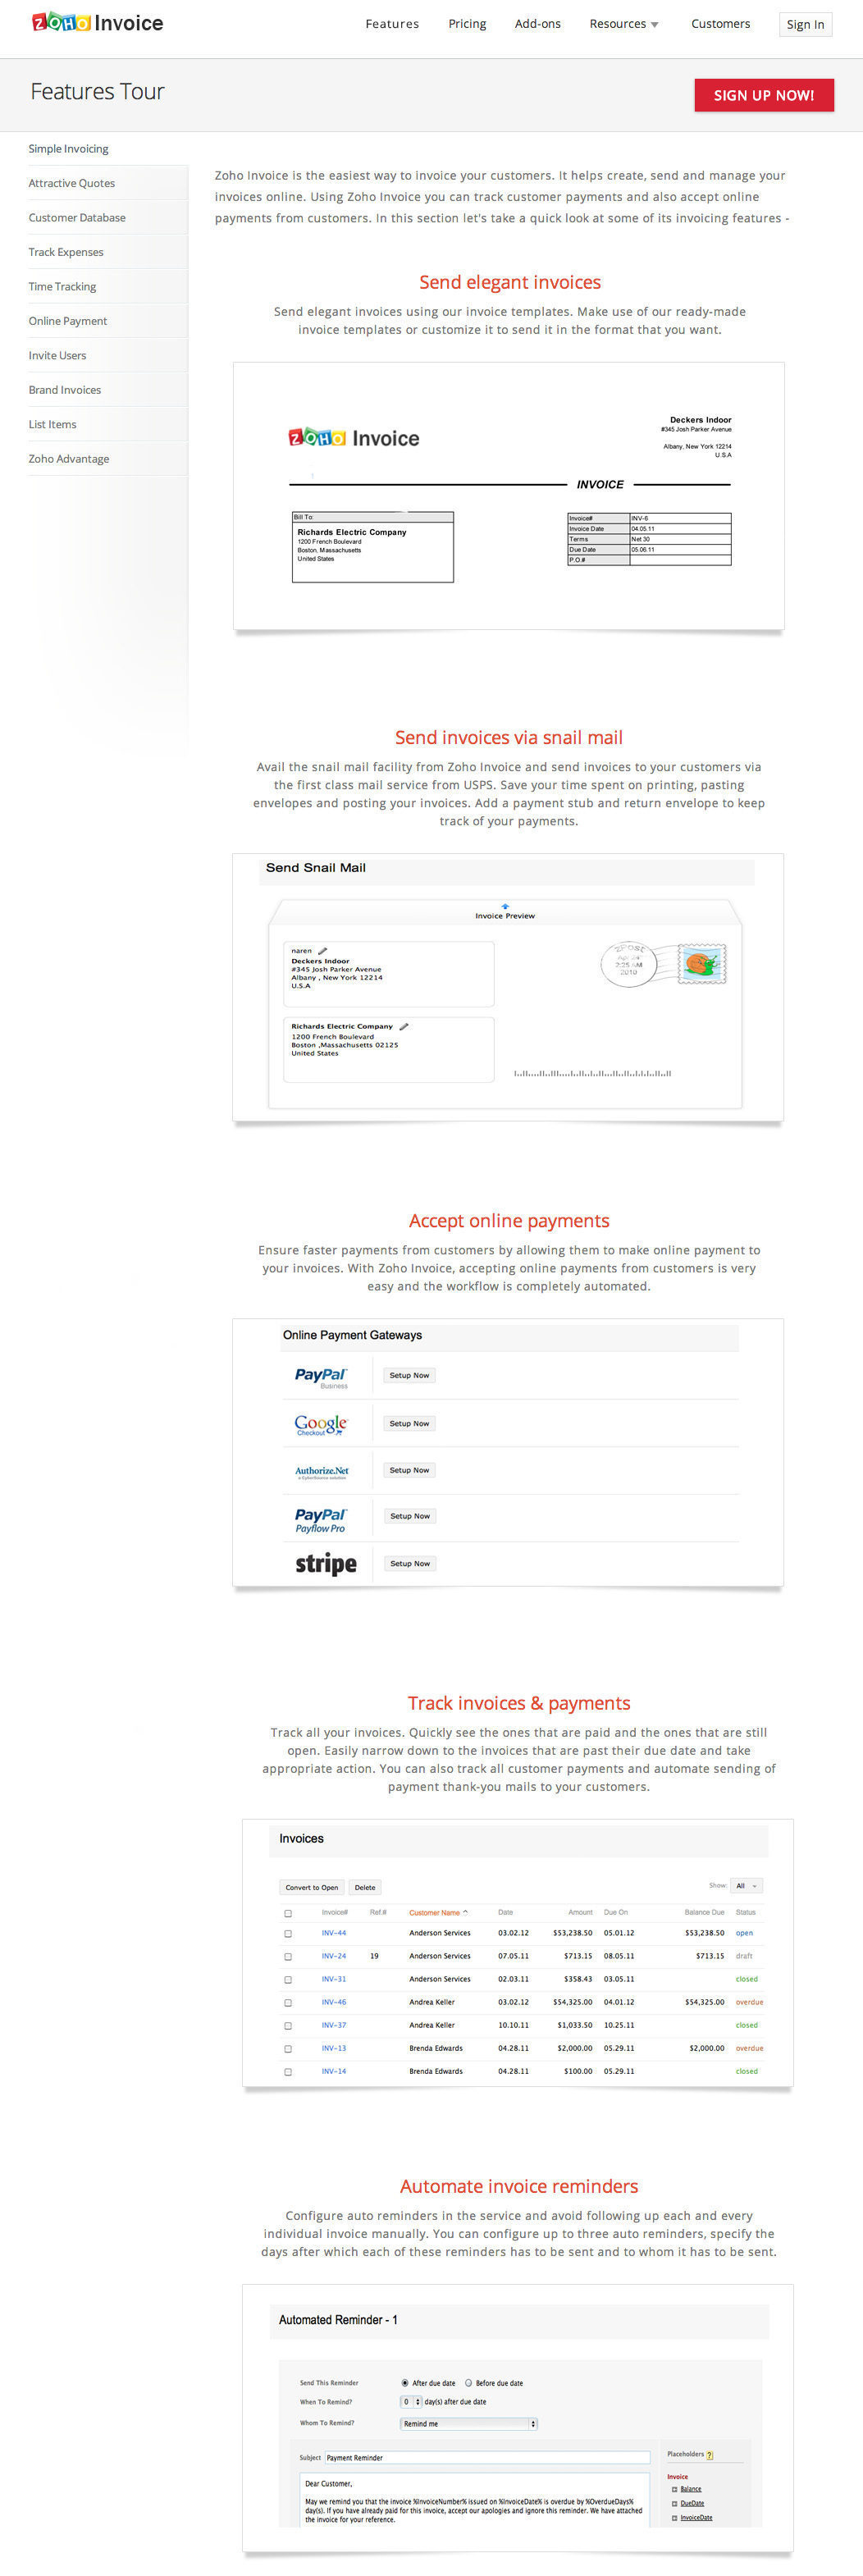 Coolmathgamesus  Scenic Top  Complaints And Reviews About Zoho Invoice With Licious Zoho Invoice Pricing Zoho Invoice  Simple Invoicing  With Cute Ebay Invoice Template Also Print Invoices In Addition Honda Pilot Invoice And Free Pdf Invoice Template As Well As Invoice Mean Additionally Invoice Email Sample From Consumeraffairscom With Coolmathgamesus  Licious Top  Complaints And Reviews About Zoho Invoice With Cute Zoho Invoice Pricing Zoho Invoice  Simple Invoicing  And Scenic Ebay Invoice Template Also Print Invoices In Addition Honda Pilot Invoice From Consumeraffairscom